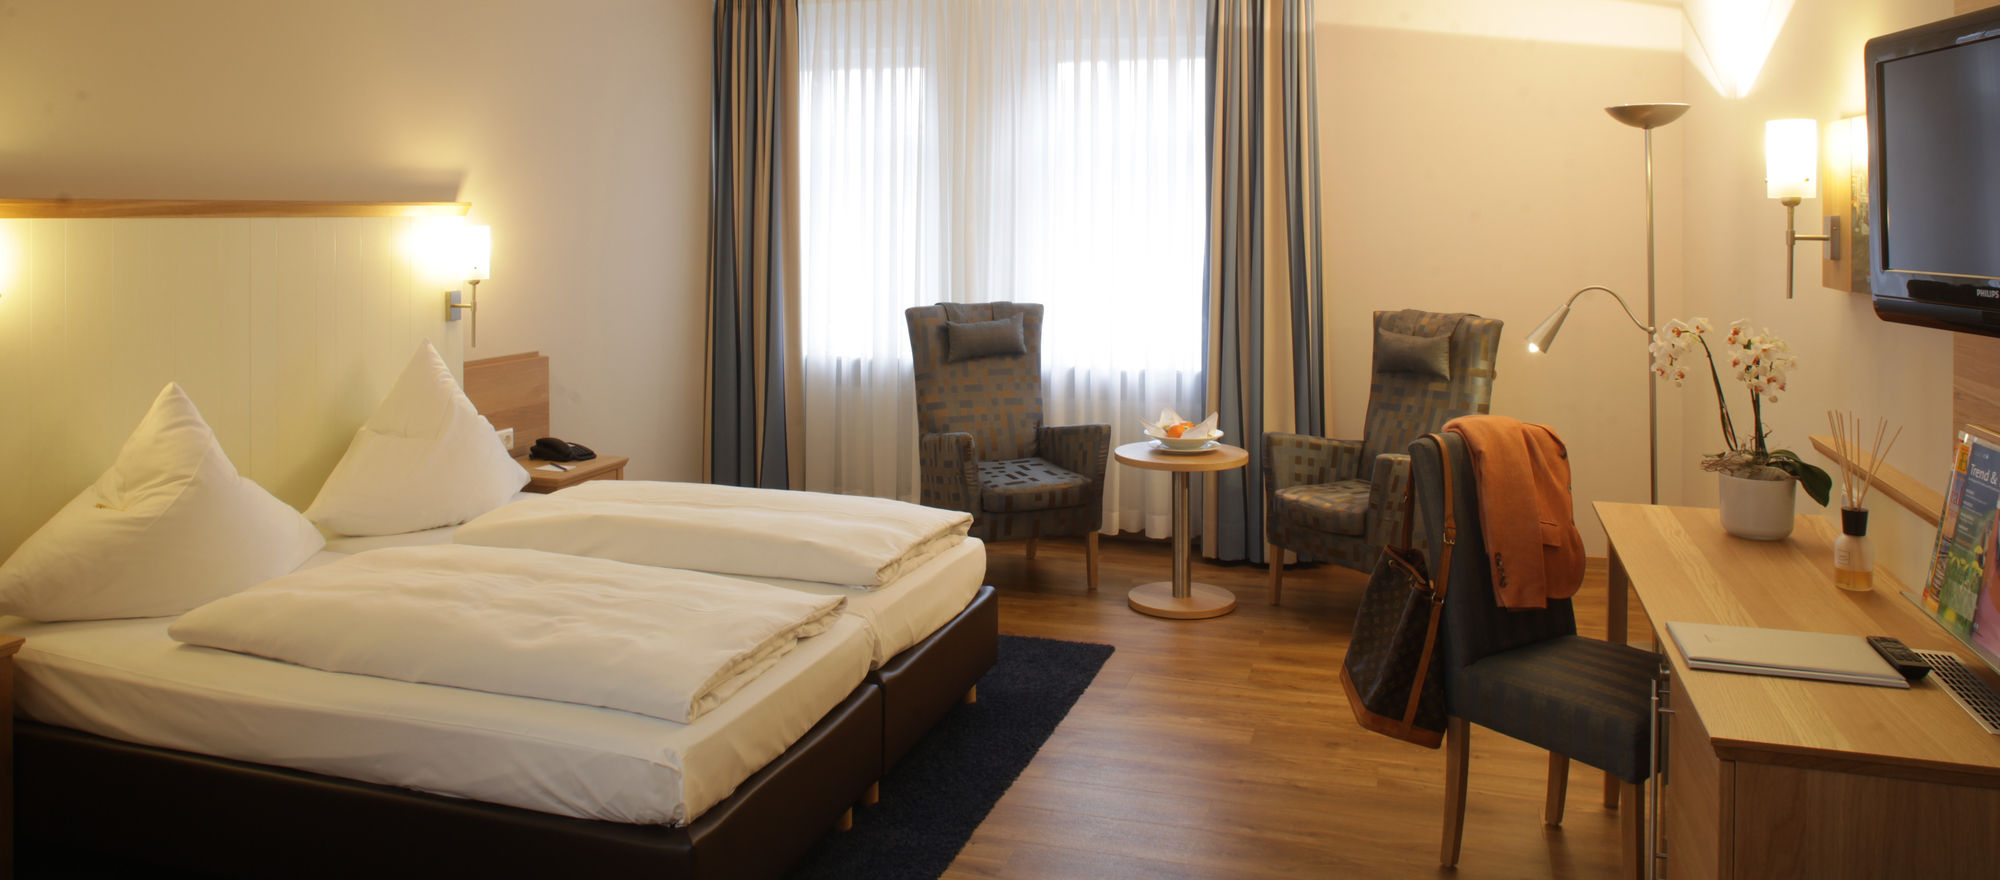 Superior room in Ringhotel Aquarium Boddenberg in Friedrichstadt, 4 star hotel at the north sea